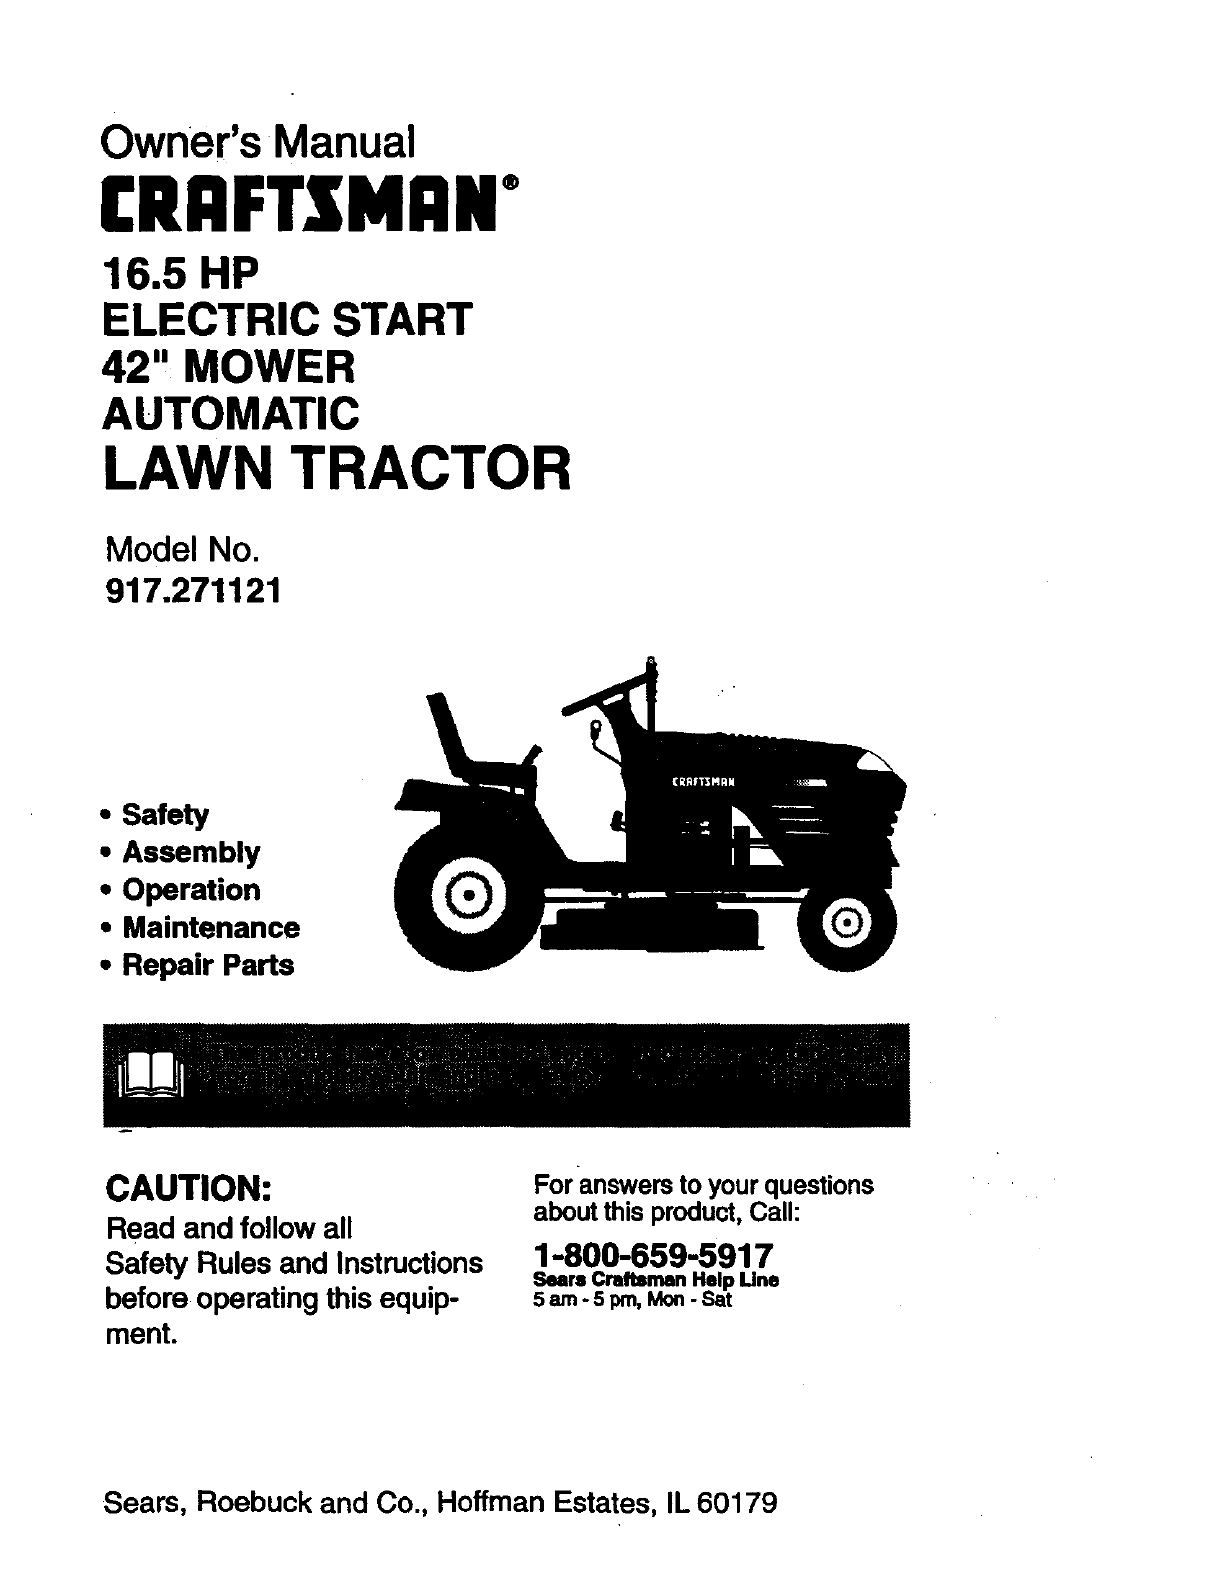 Craftsman Riding Mower Steering Problems : craftsman, riding, mower, steering, problems, Craftsman, 917271121, Manual, ELECTRIC, START, AUTOMATIC, TRACTOR, Manuals, Guides, 98120014